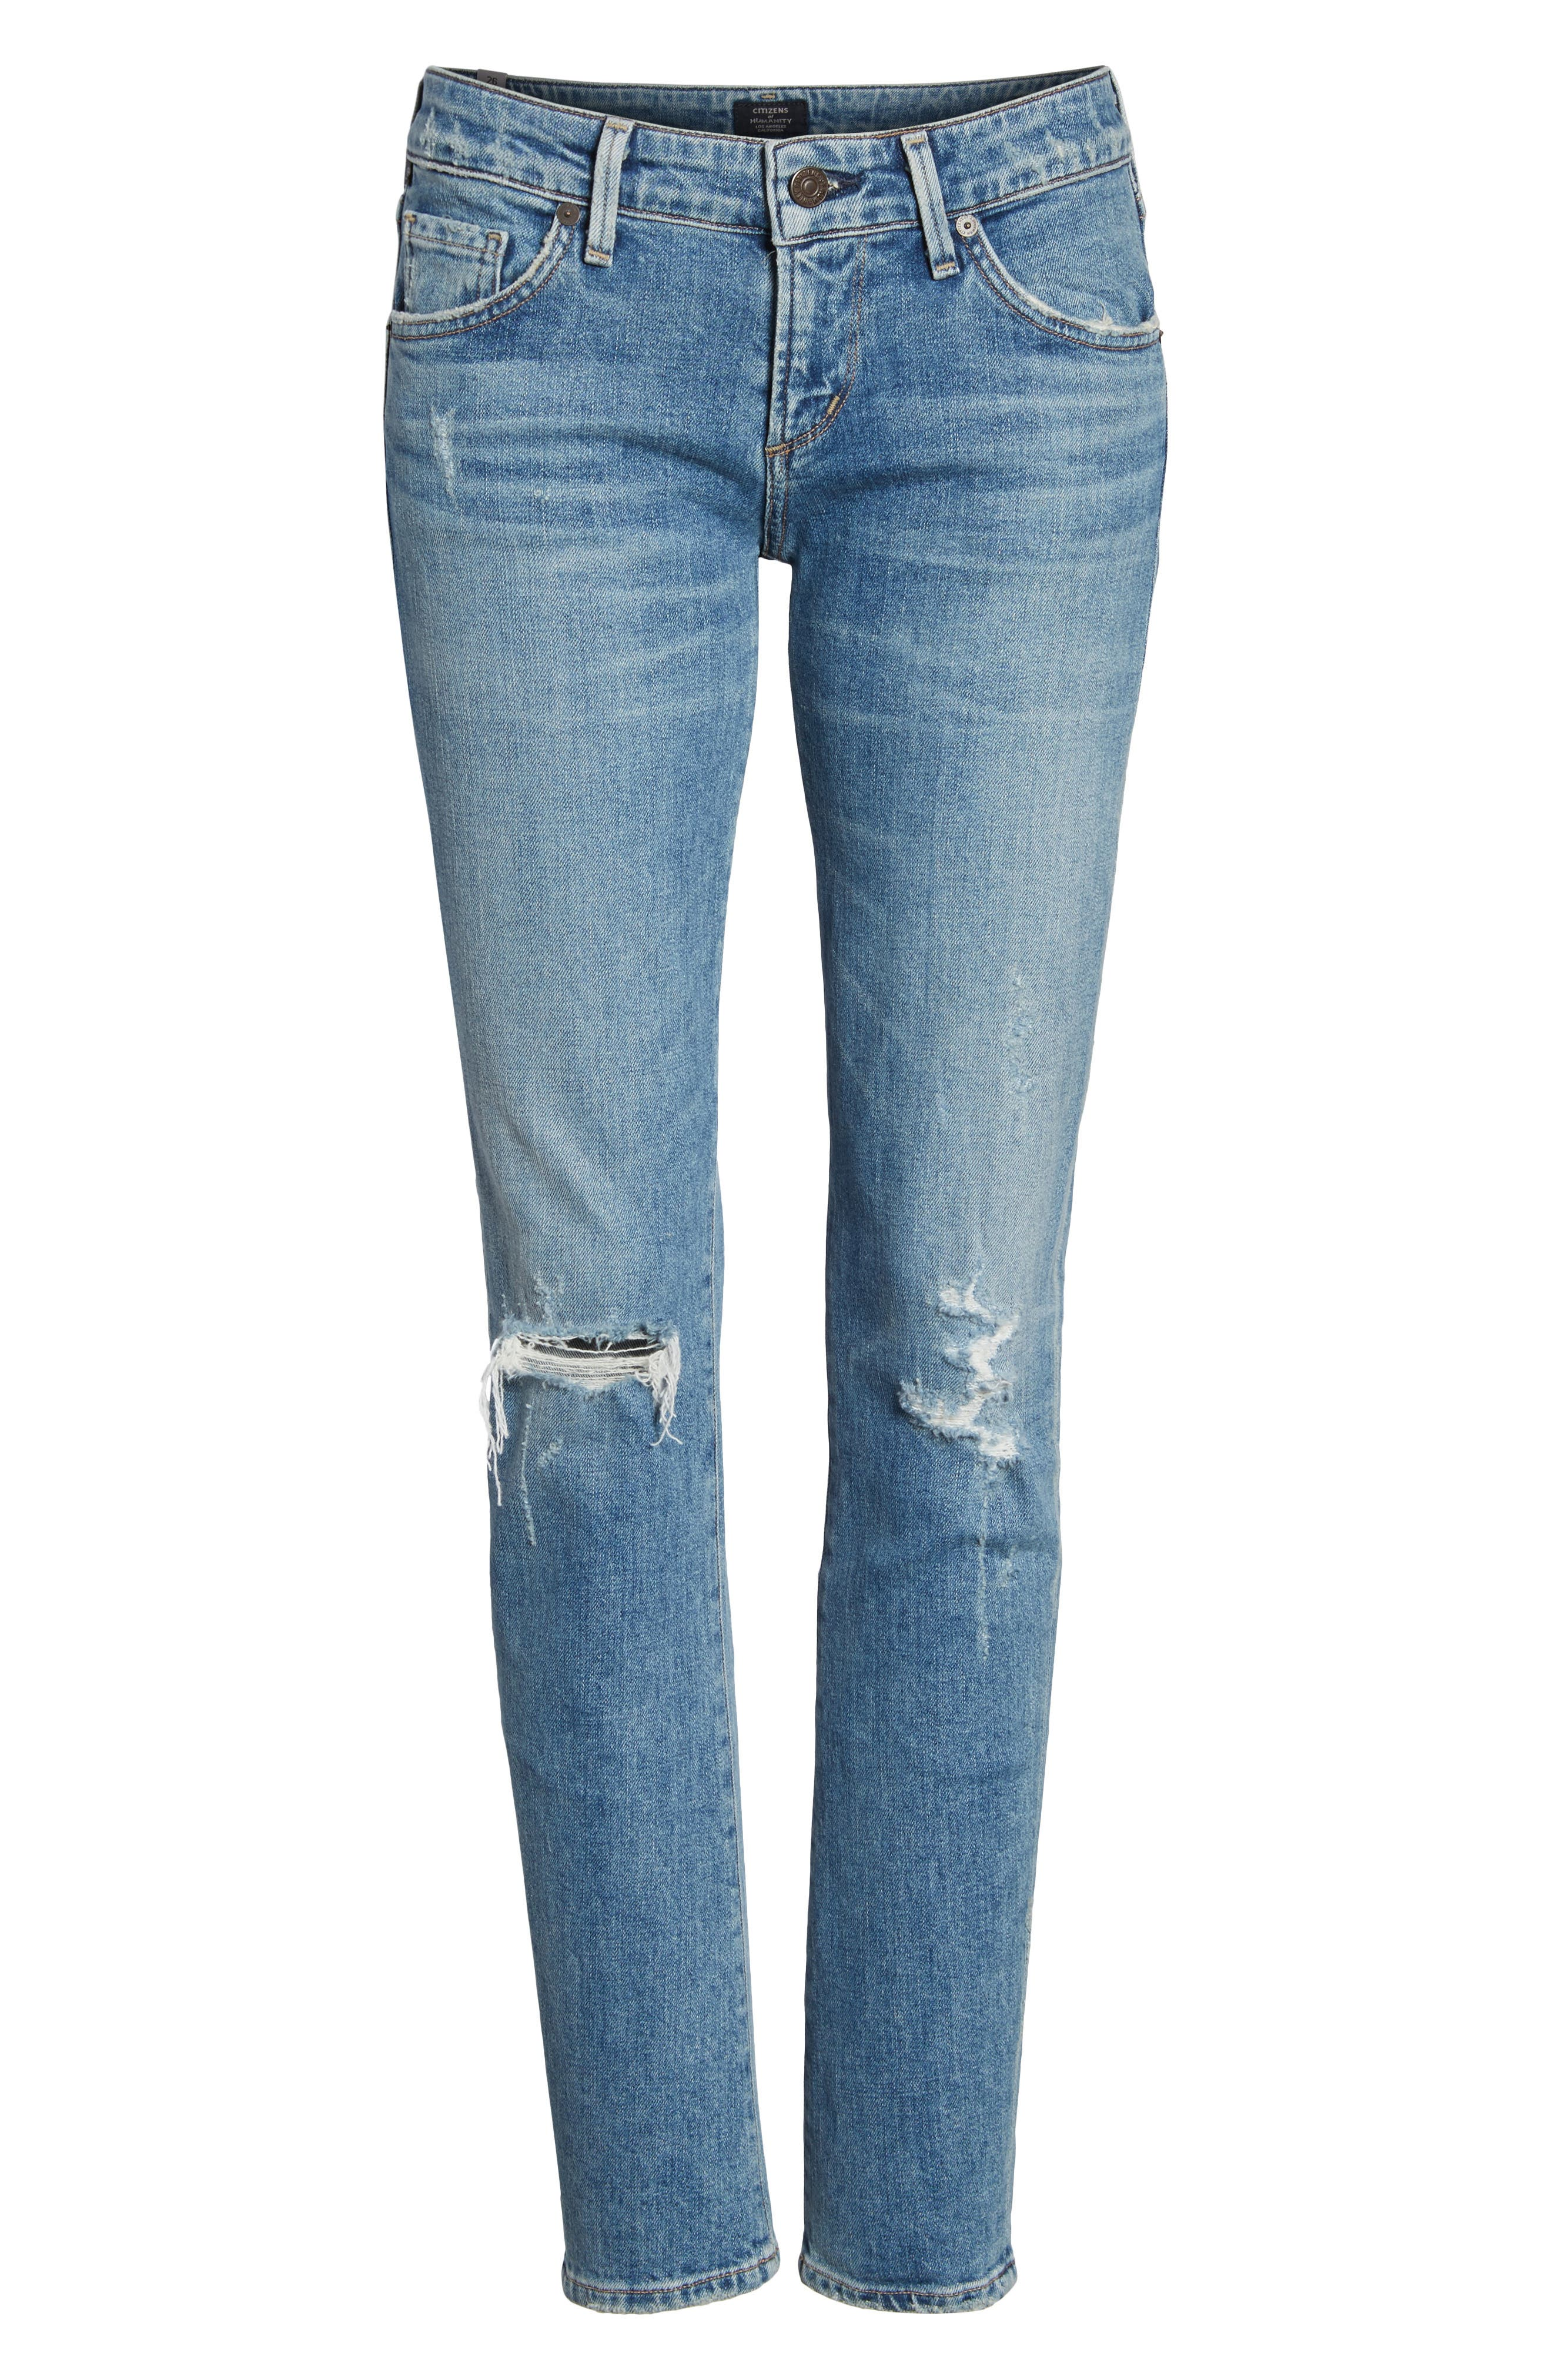 CITIZENS OF HUMANITY,                             Racer Ripped Skinny Jeans,                             Alternate thumbnail 7, color,                             DISTRESSED ENCORE